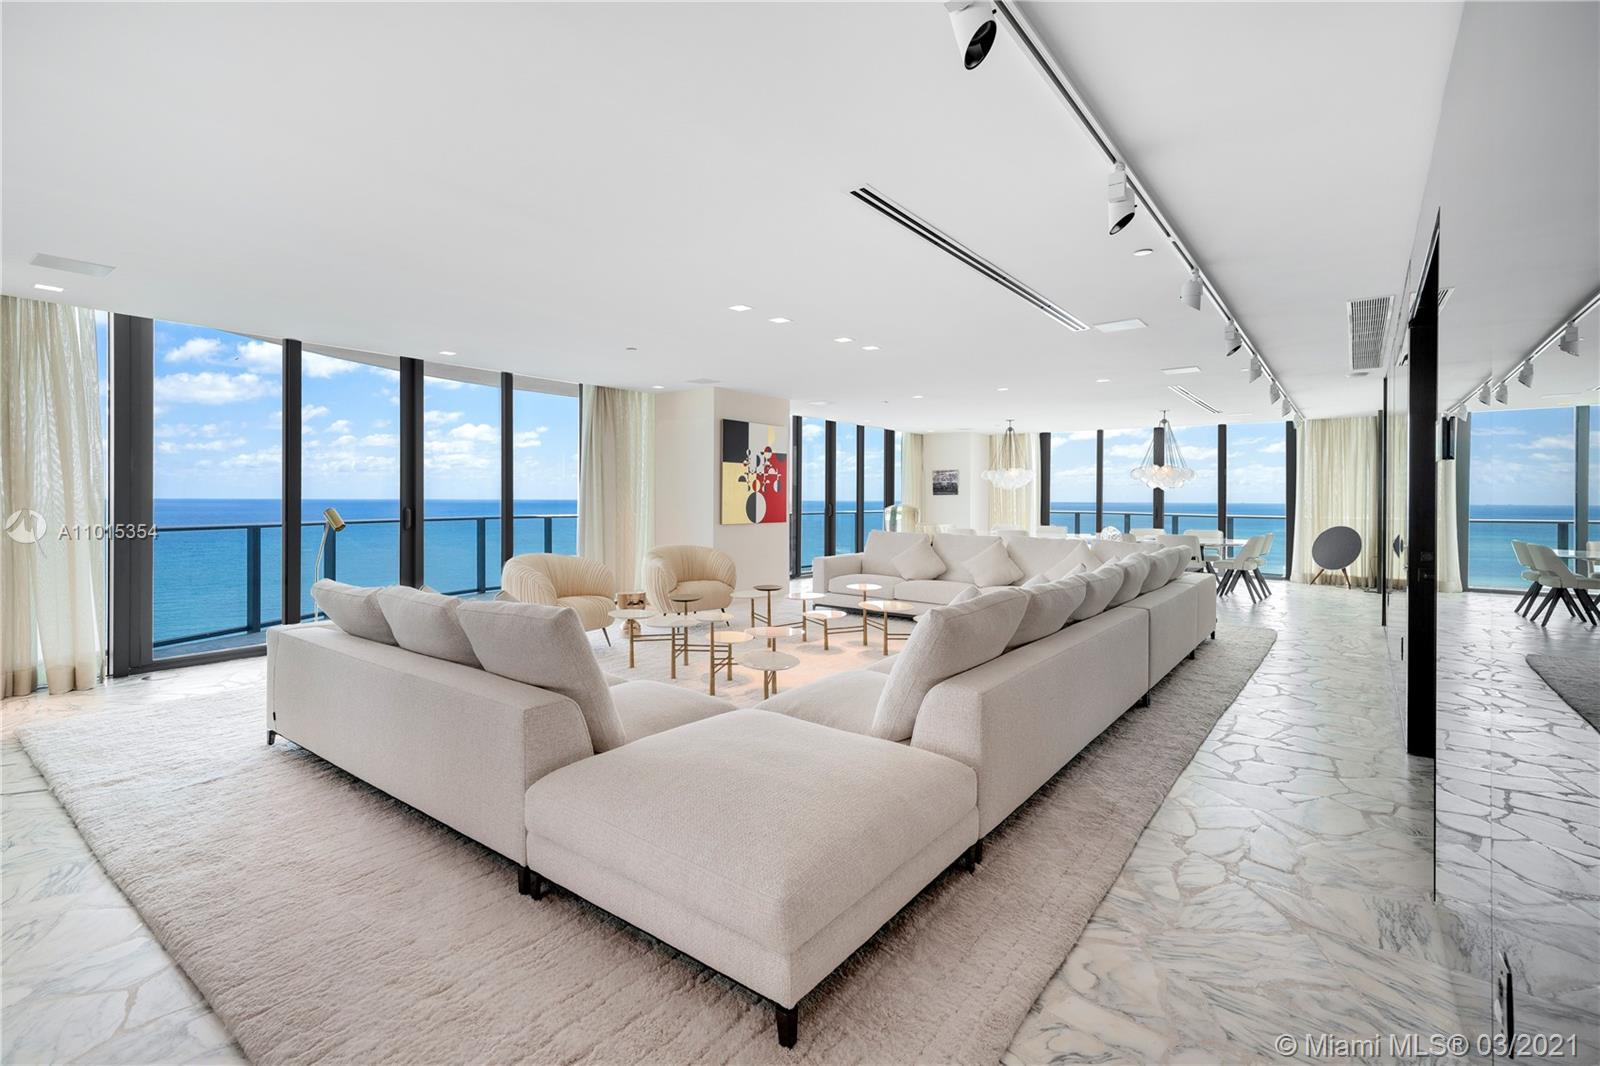 Enjoy 360 degrees of unobstructed views. This 4,992 square foot marvel in the sky boasts Atlantic Ocean and sunrise and sunset views that will take your breath away. With only one residence per floor a wraparound balcony spans the entire 17th floor while 4 BR, 5+1BA, a custom gourmet kitchen and an open floorplan living and dining room area exude luxury in every corner. The living spaces feature seamless 10 ft floor-to-ceiling glass walls & sensational views of the Atlantic Ocean, Golden Beach, & skylines of Miami. Every room offers views and balcony access while the principal suite boasts dual rain showers, sinks and closets. Regalia offers a concierge, full service spa, beach & pool, a private wine vault, business center, children's play room, library, yoga studio & fitness center.